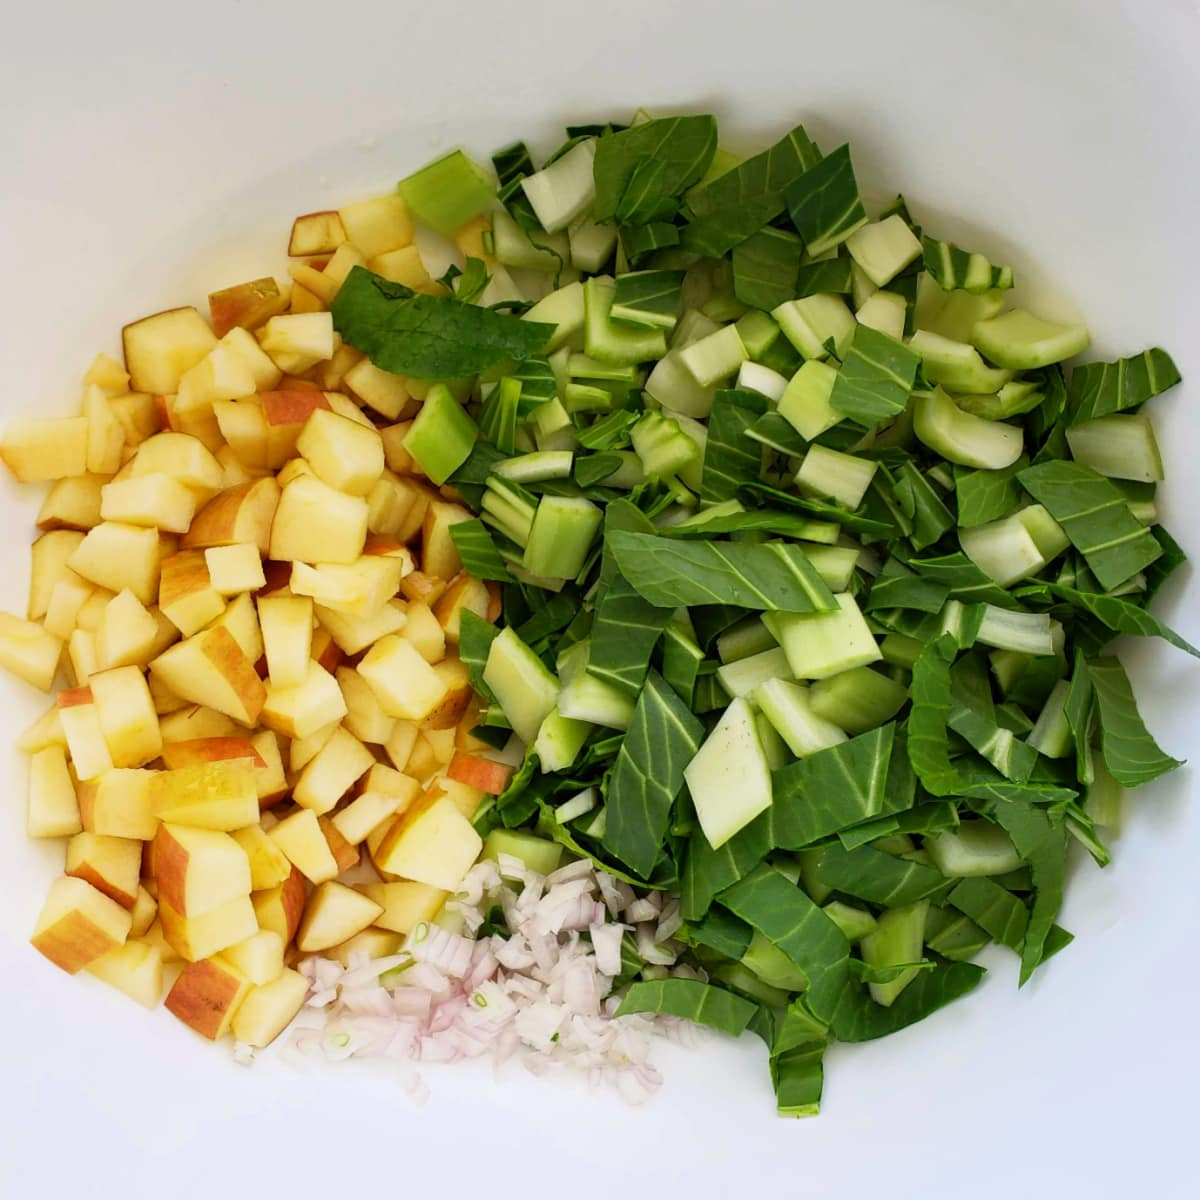 Aerial view of chopped baby bok choy, apple and shallot in a white mixing bowl